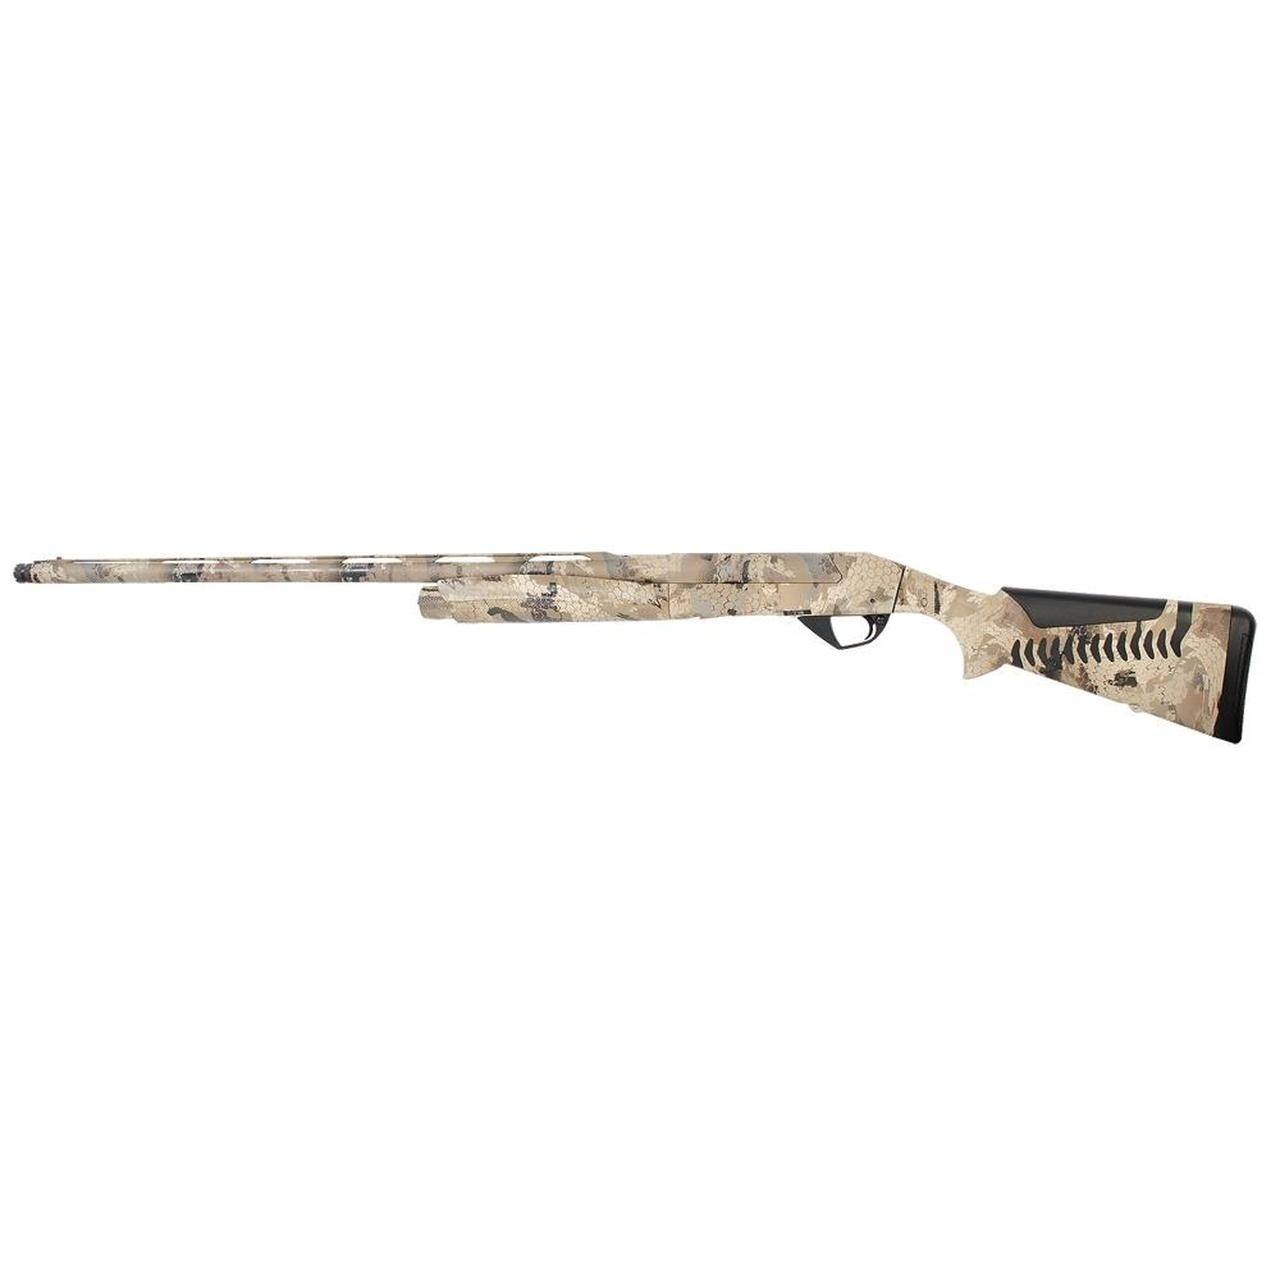 Beretta USA J42XM18 A400 Xtreme Plus 12 Gauge 28in. 2+1 3.5in. Gore Optifade Marsh Fixed w/Kick-Off Stock Right Hand